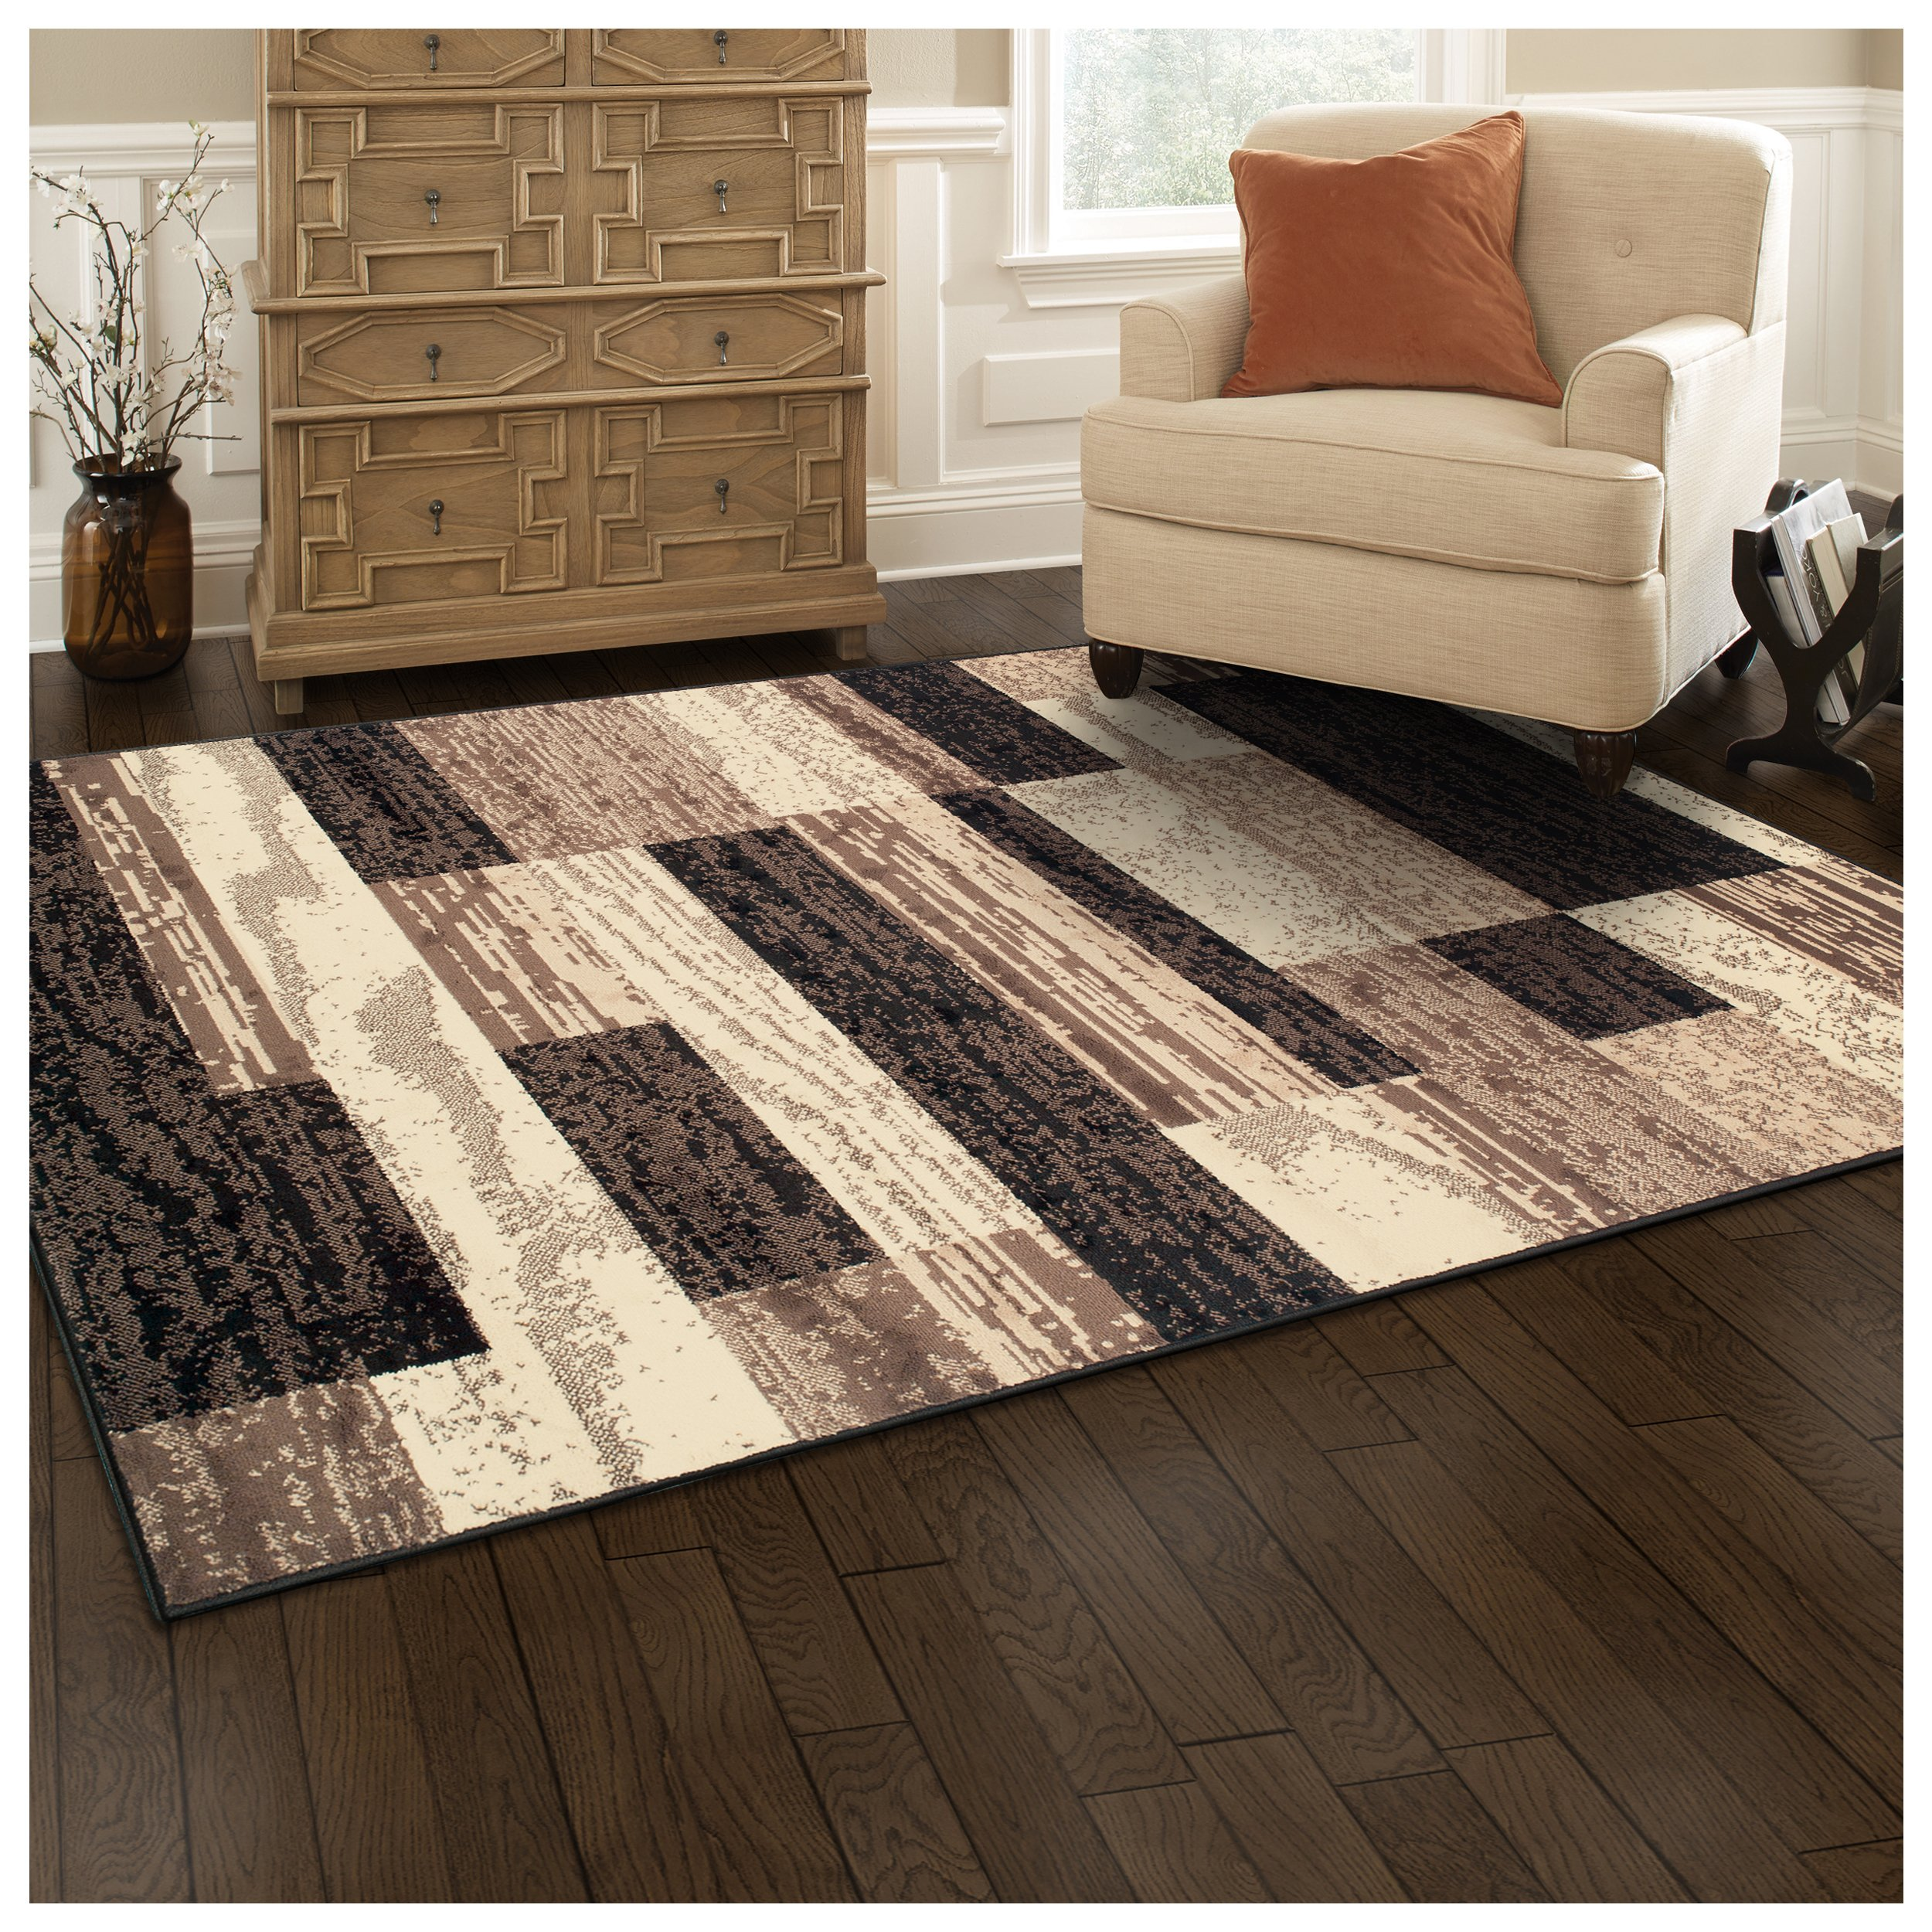 Superior Modern Rockwood Collection Area Rug, 8mm Pile Height with Jute Backing, Textured Geometric Brick Design, Anti-Static, Water-Repellent Rugs - Chocolate, 5' x 8' Rug by Superior